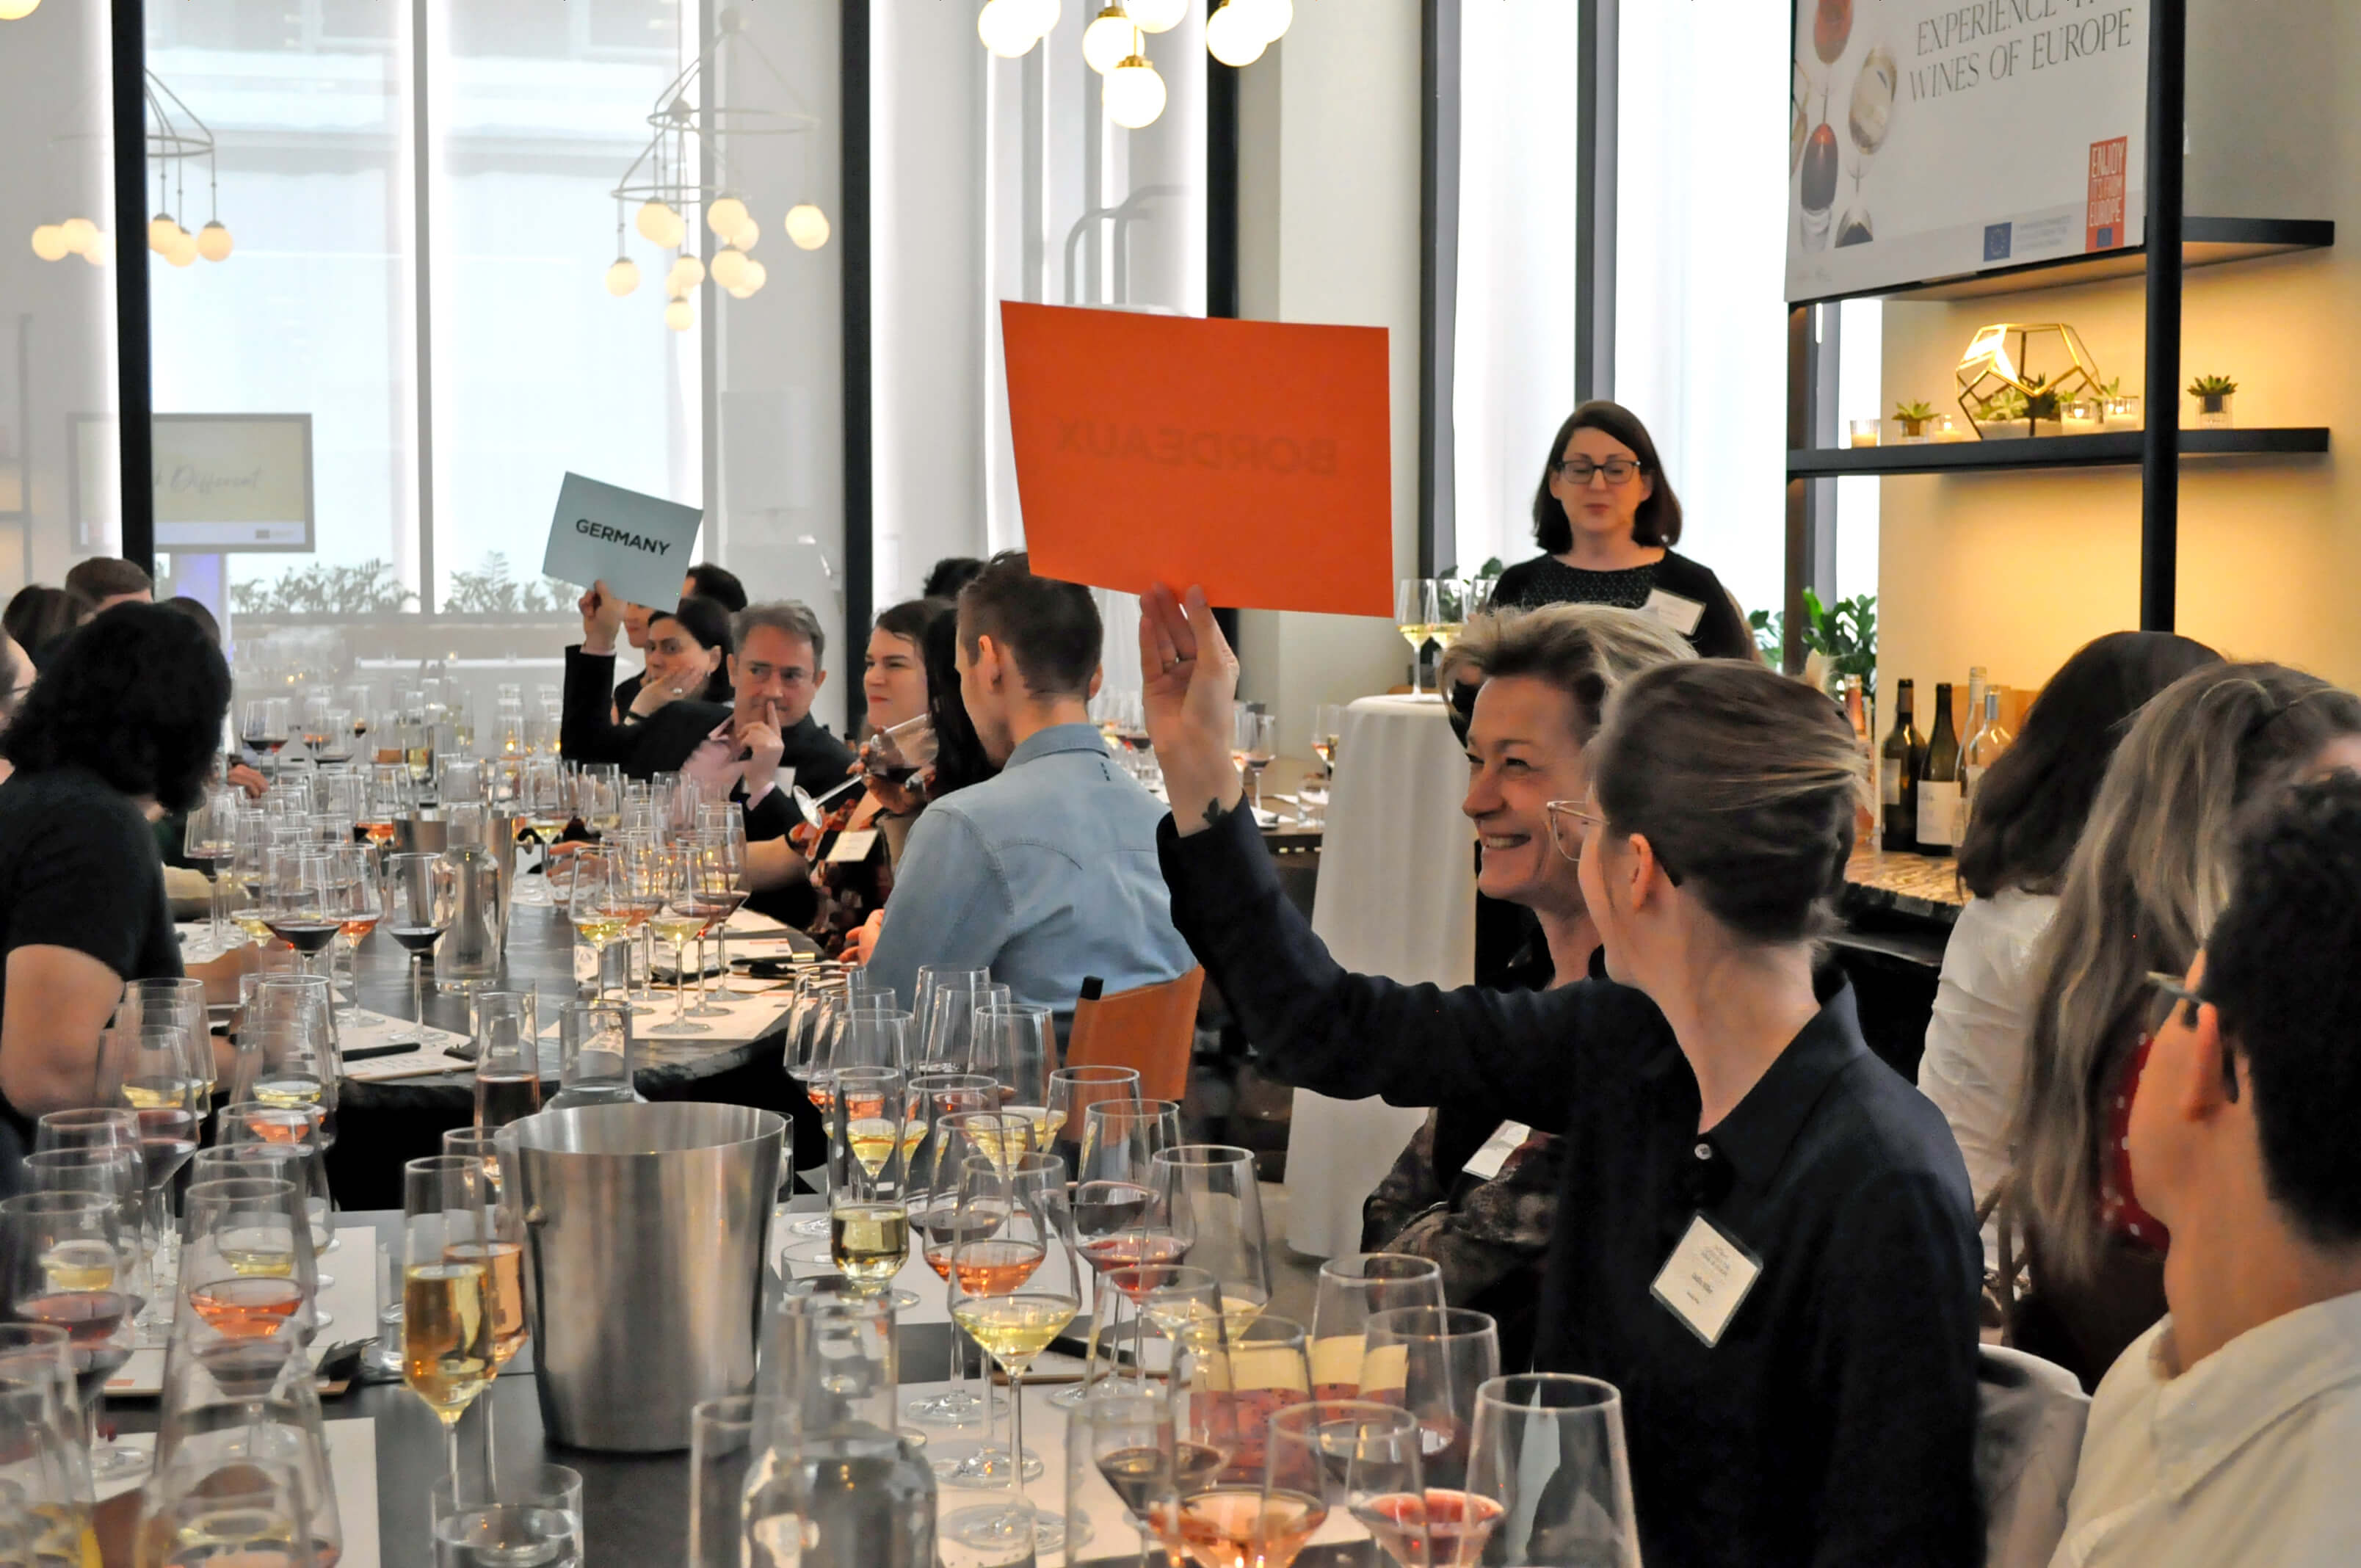 Clink Different launch event attendees enjoyed a blind tasting in which they guessed wine regions